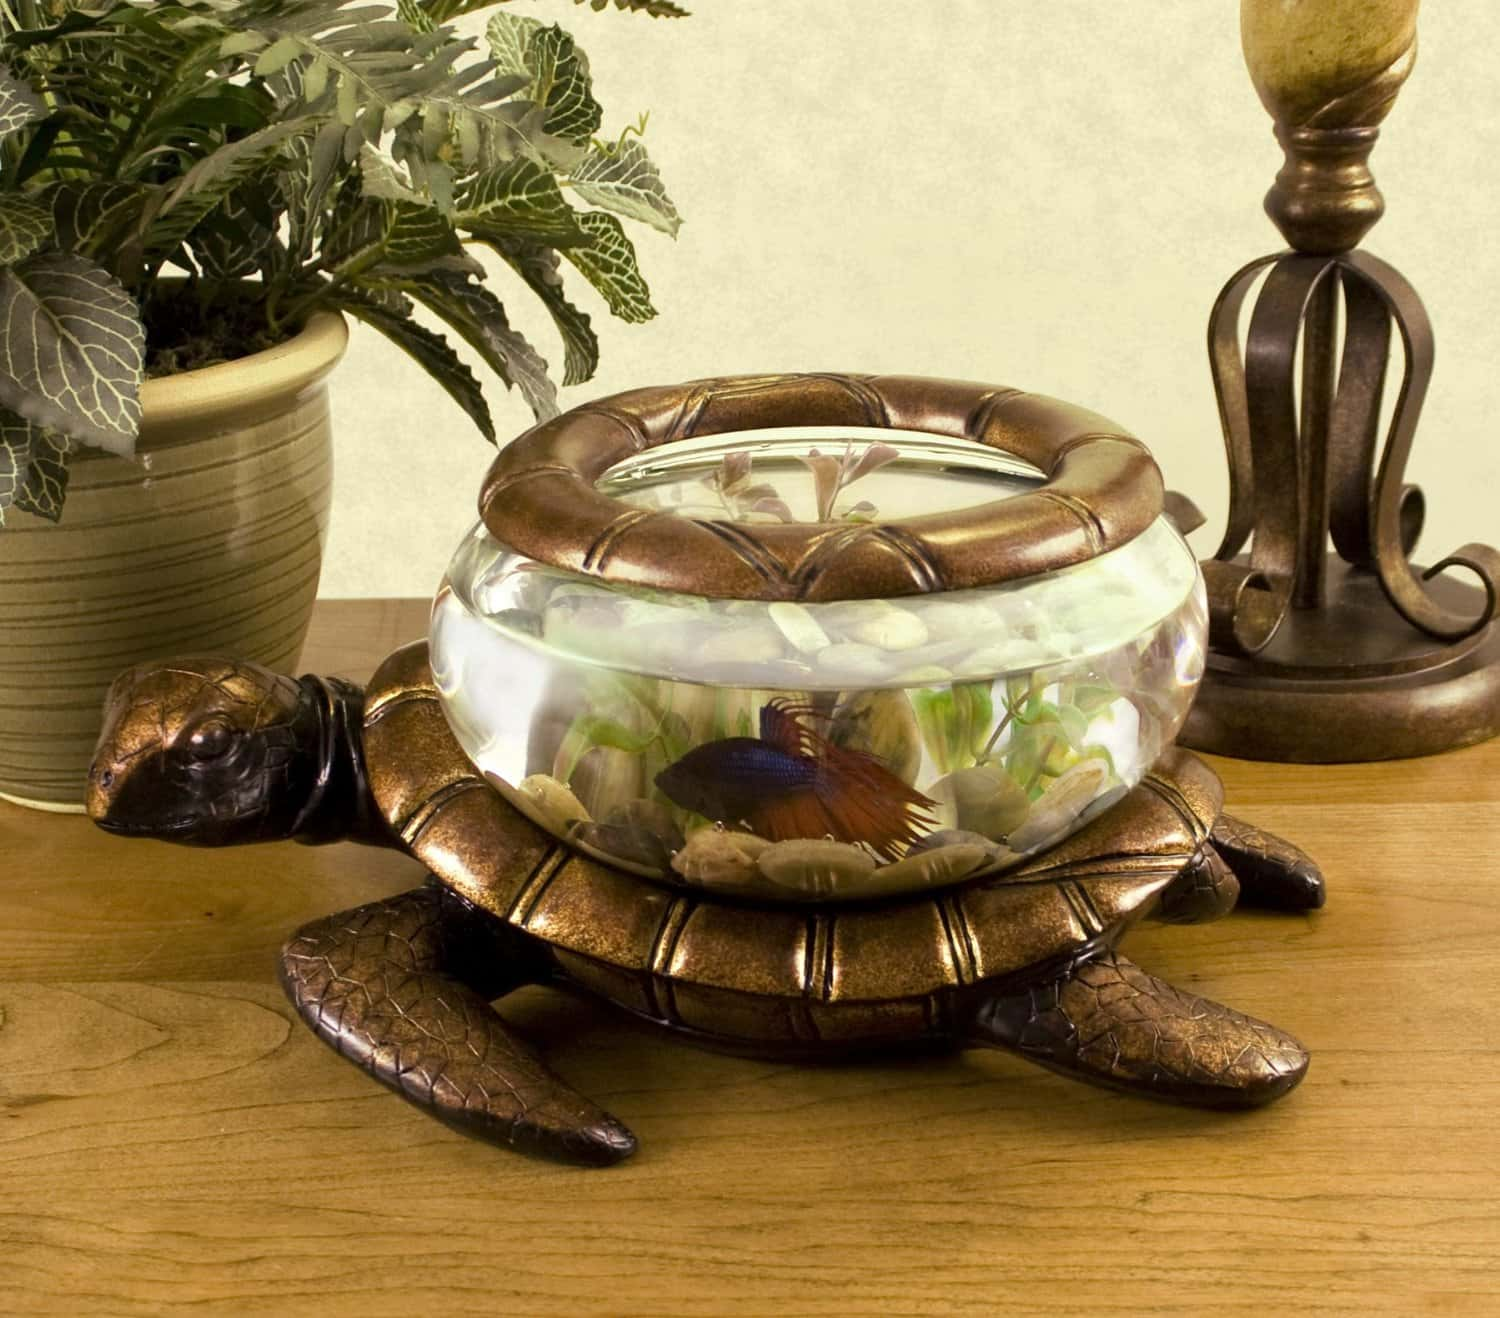 40 Cool Aquarium Ideas to Inspire You on Your Quest